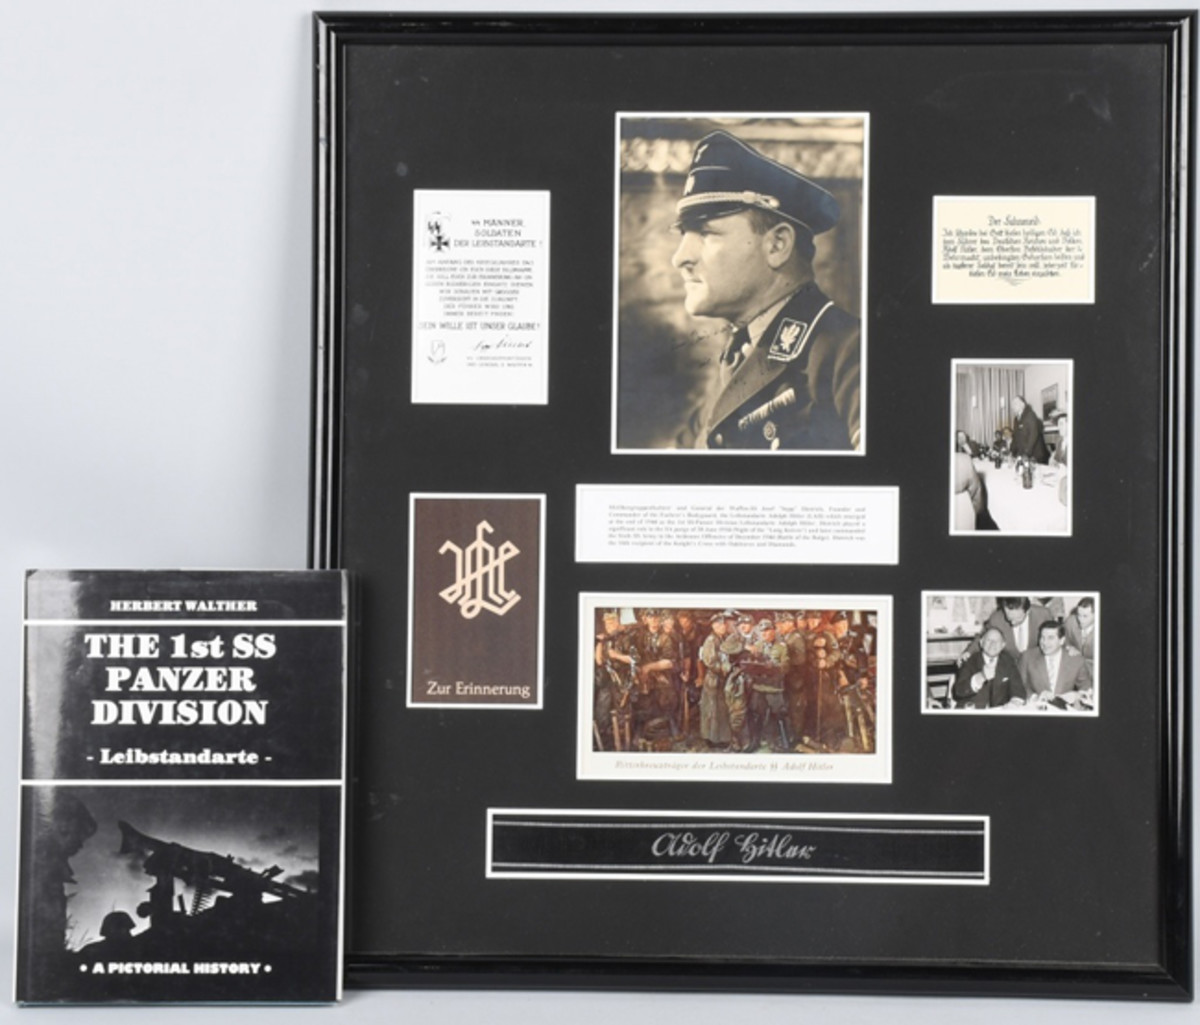 """https://www.liveauctioneers.com/item/61938243_wwii-nazi-german-sepp-dietrich-autographed-photoWWII Nazi German framed archive with photos, autograph of Josef """"Sepp"""" Dietrich, Hitler's bodyguard and Panzer division commander. Photo - Milestone Auctions"""